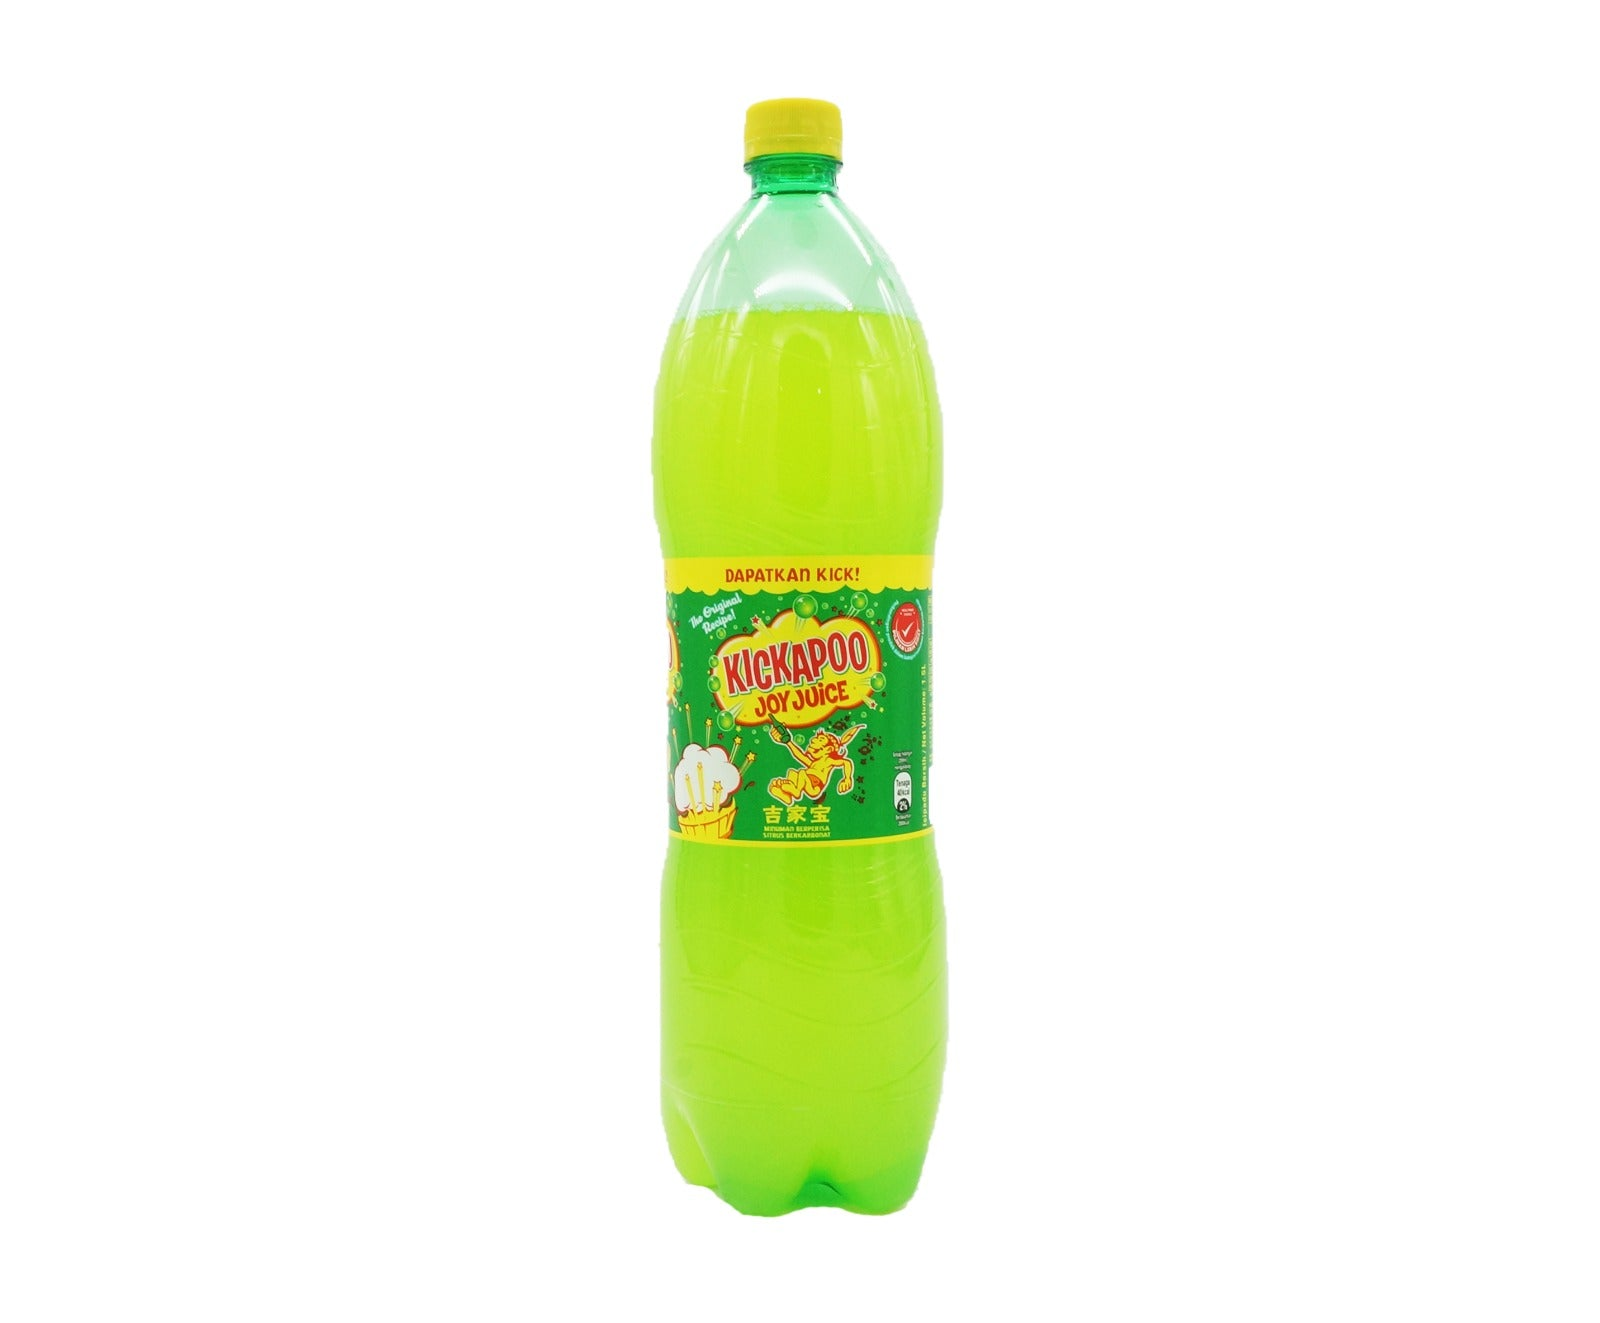 Kickapoo Bottle (1.5L – Piece)